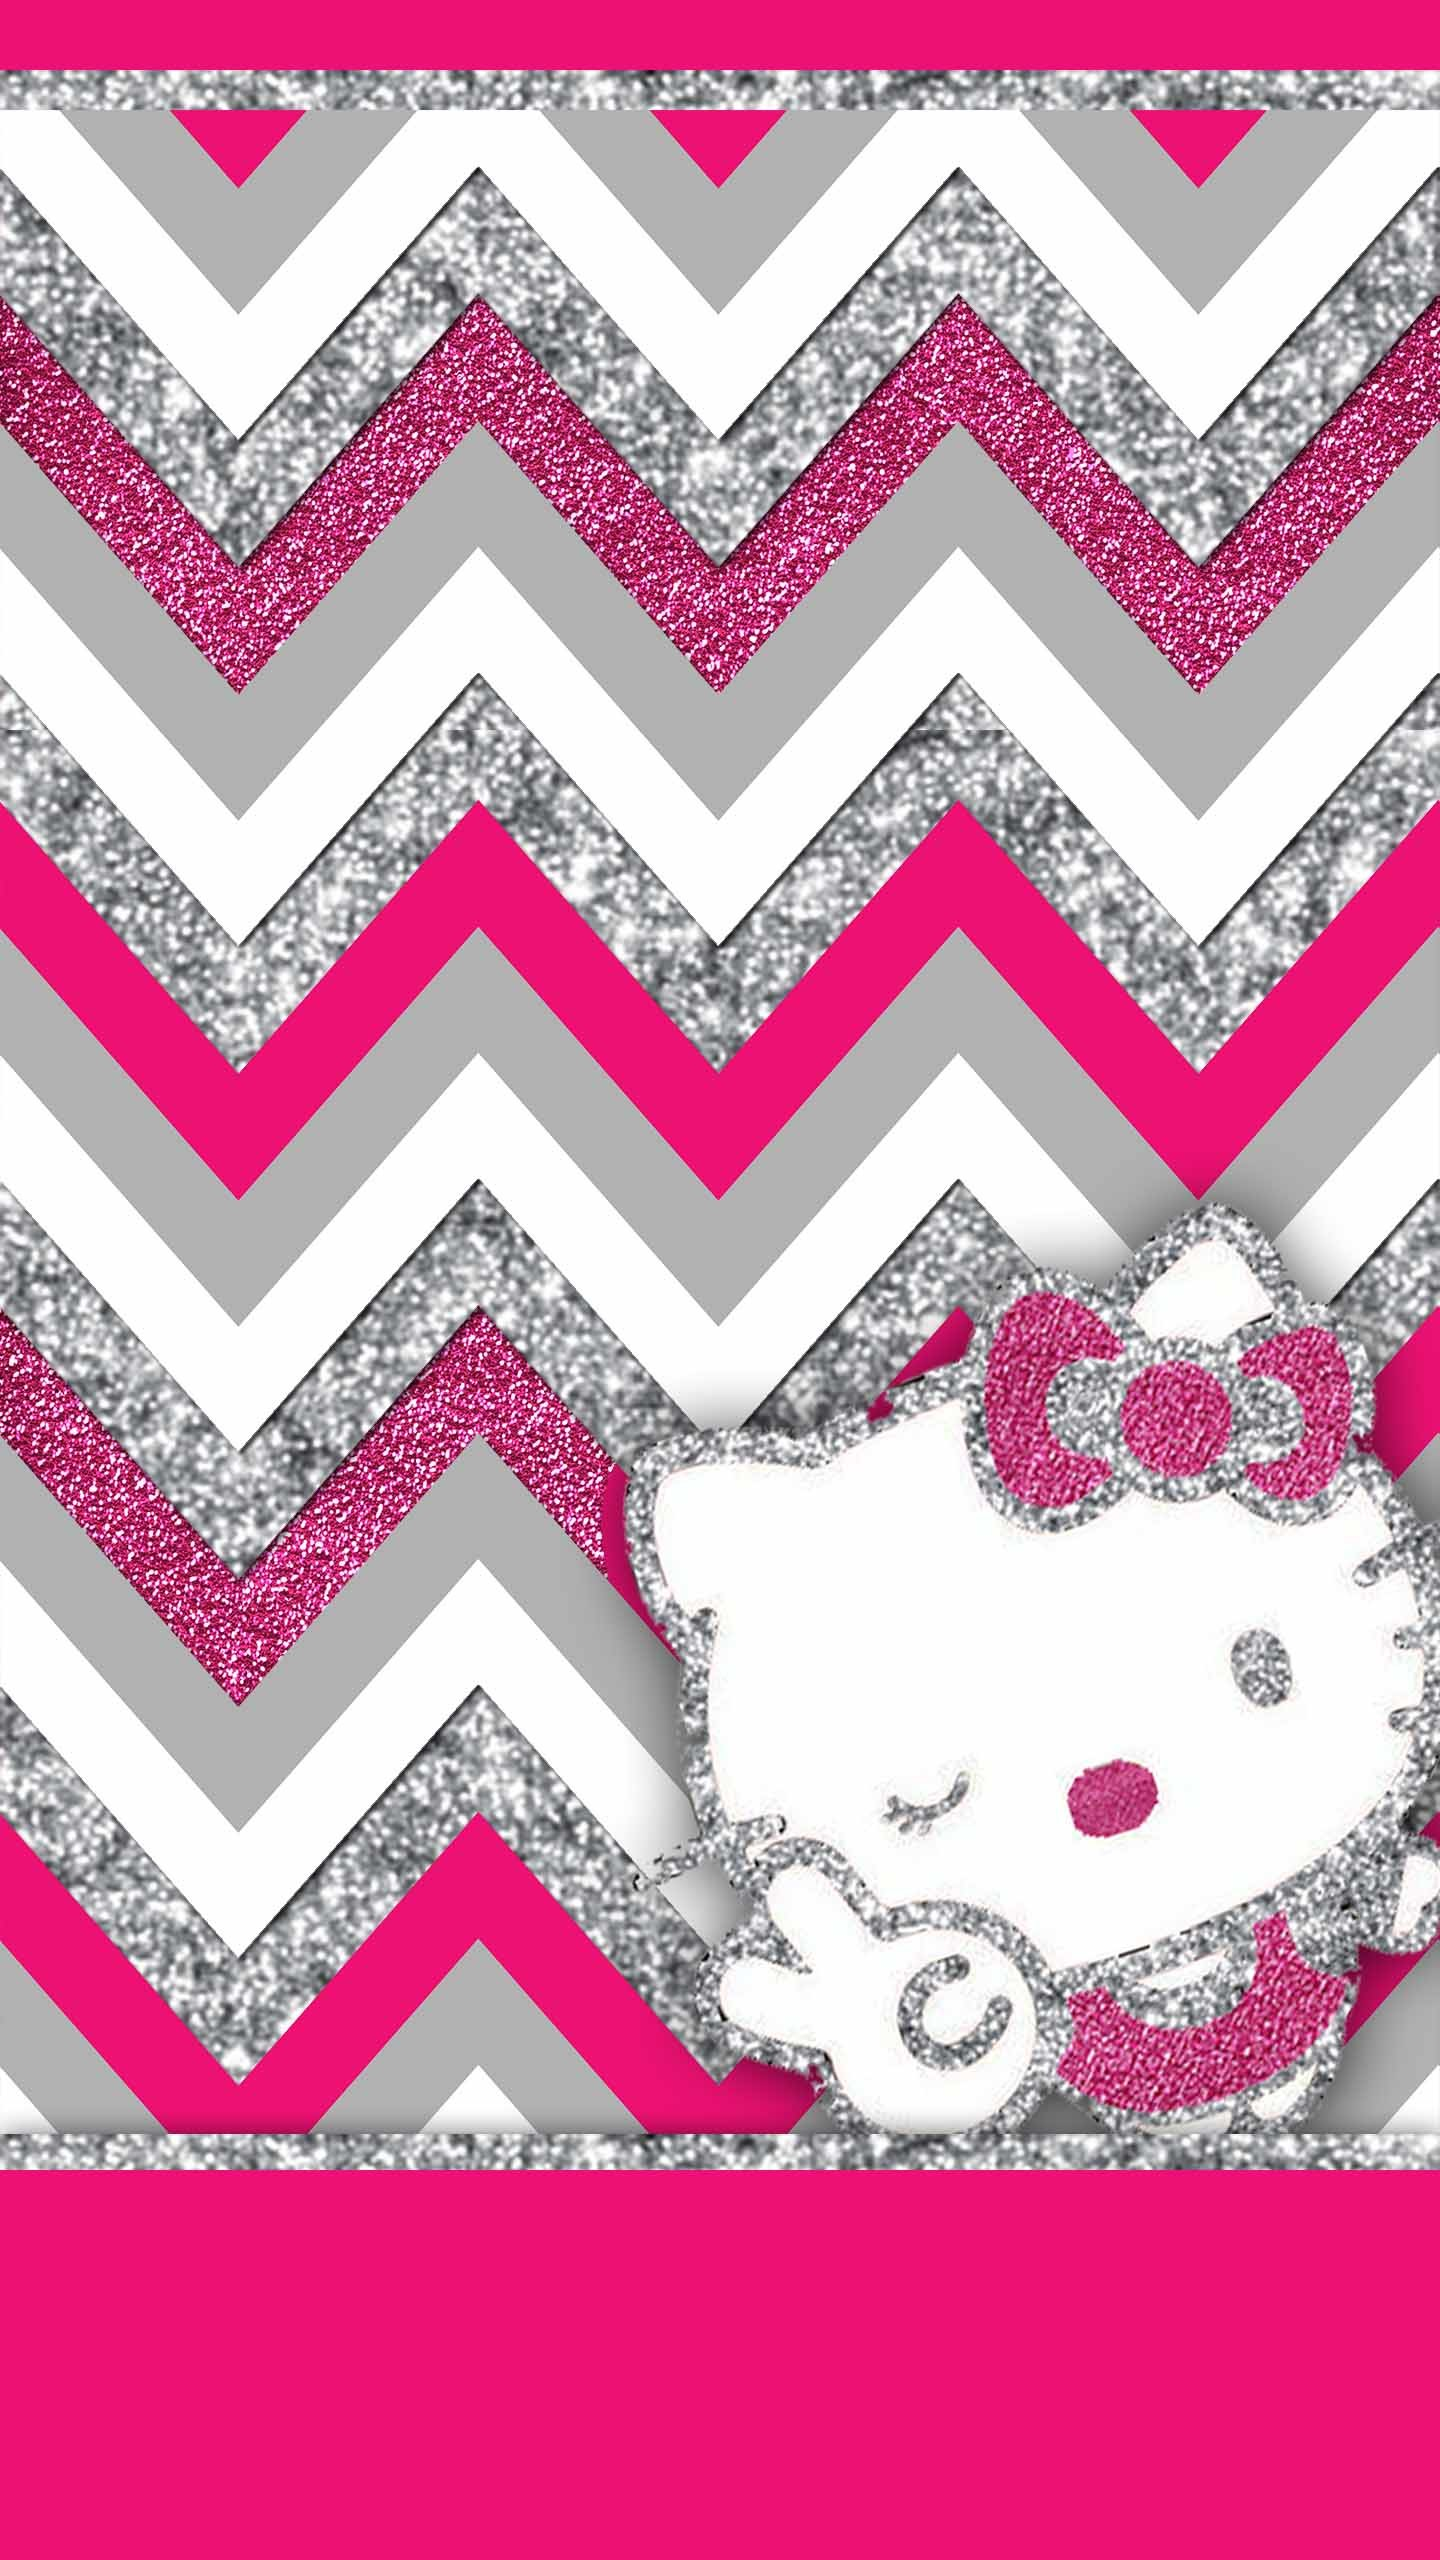 Free Pink and Silver Glitter wallpaper pack including minnie mouse and  hello kitty. Available for